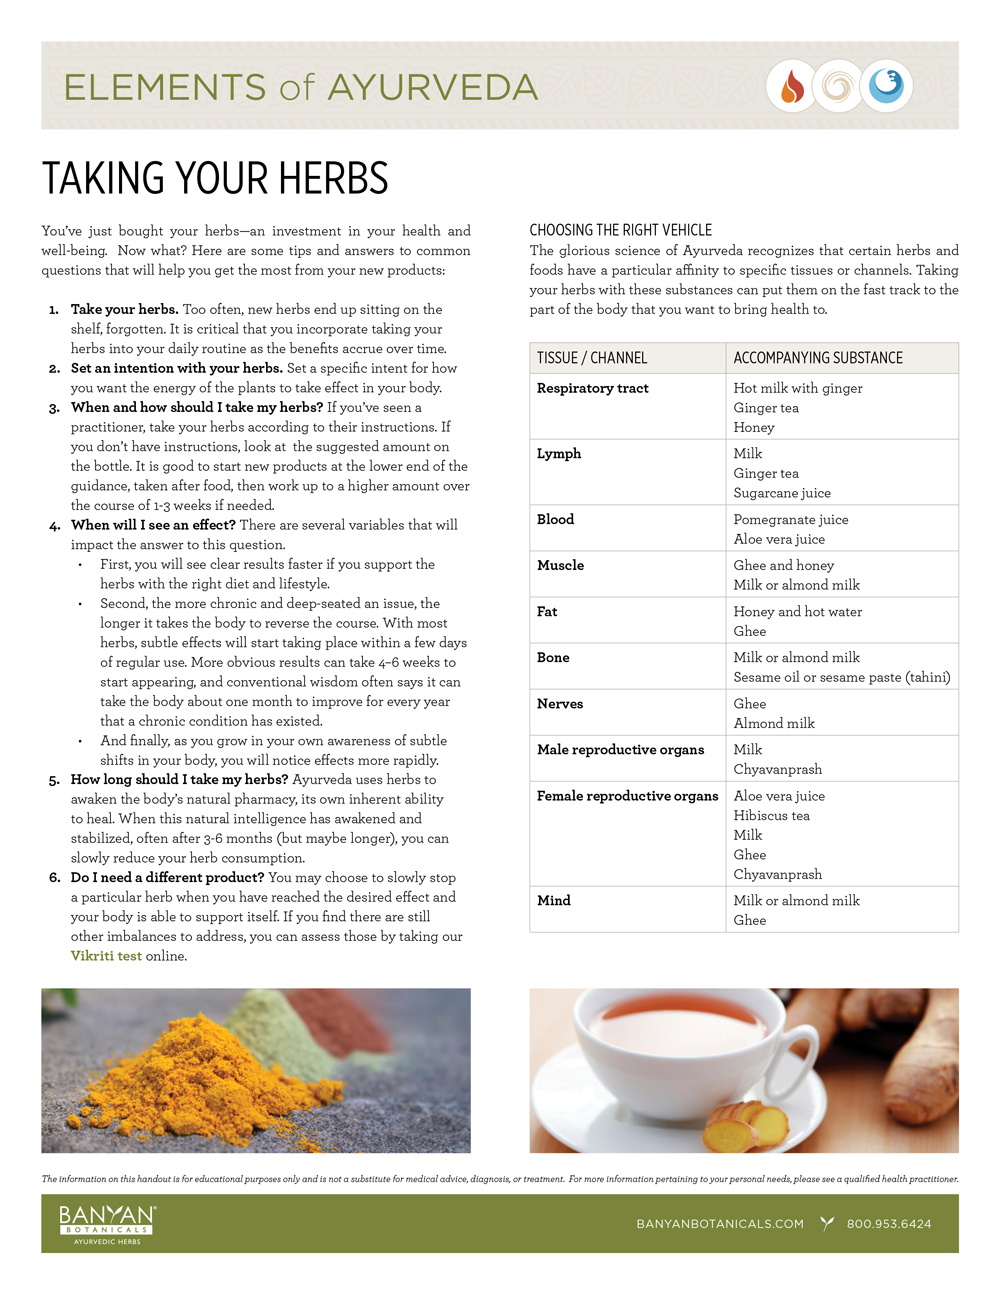 Elements of Ayurveda Handout: Taking Your Herbs